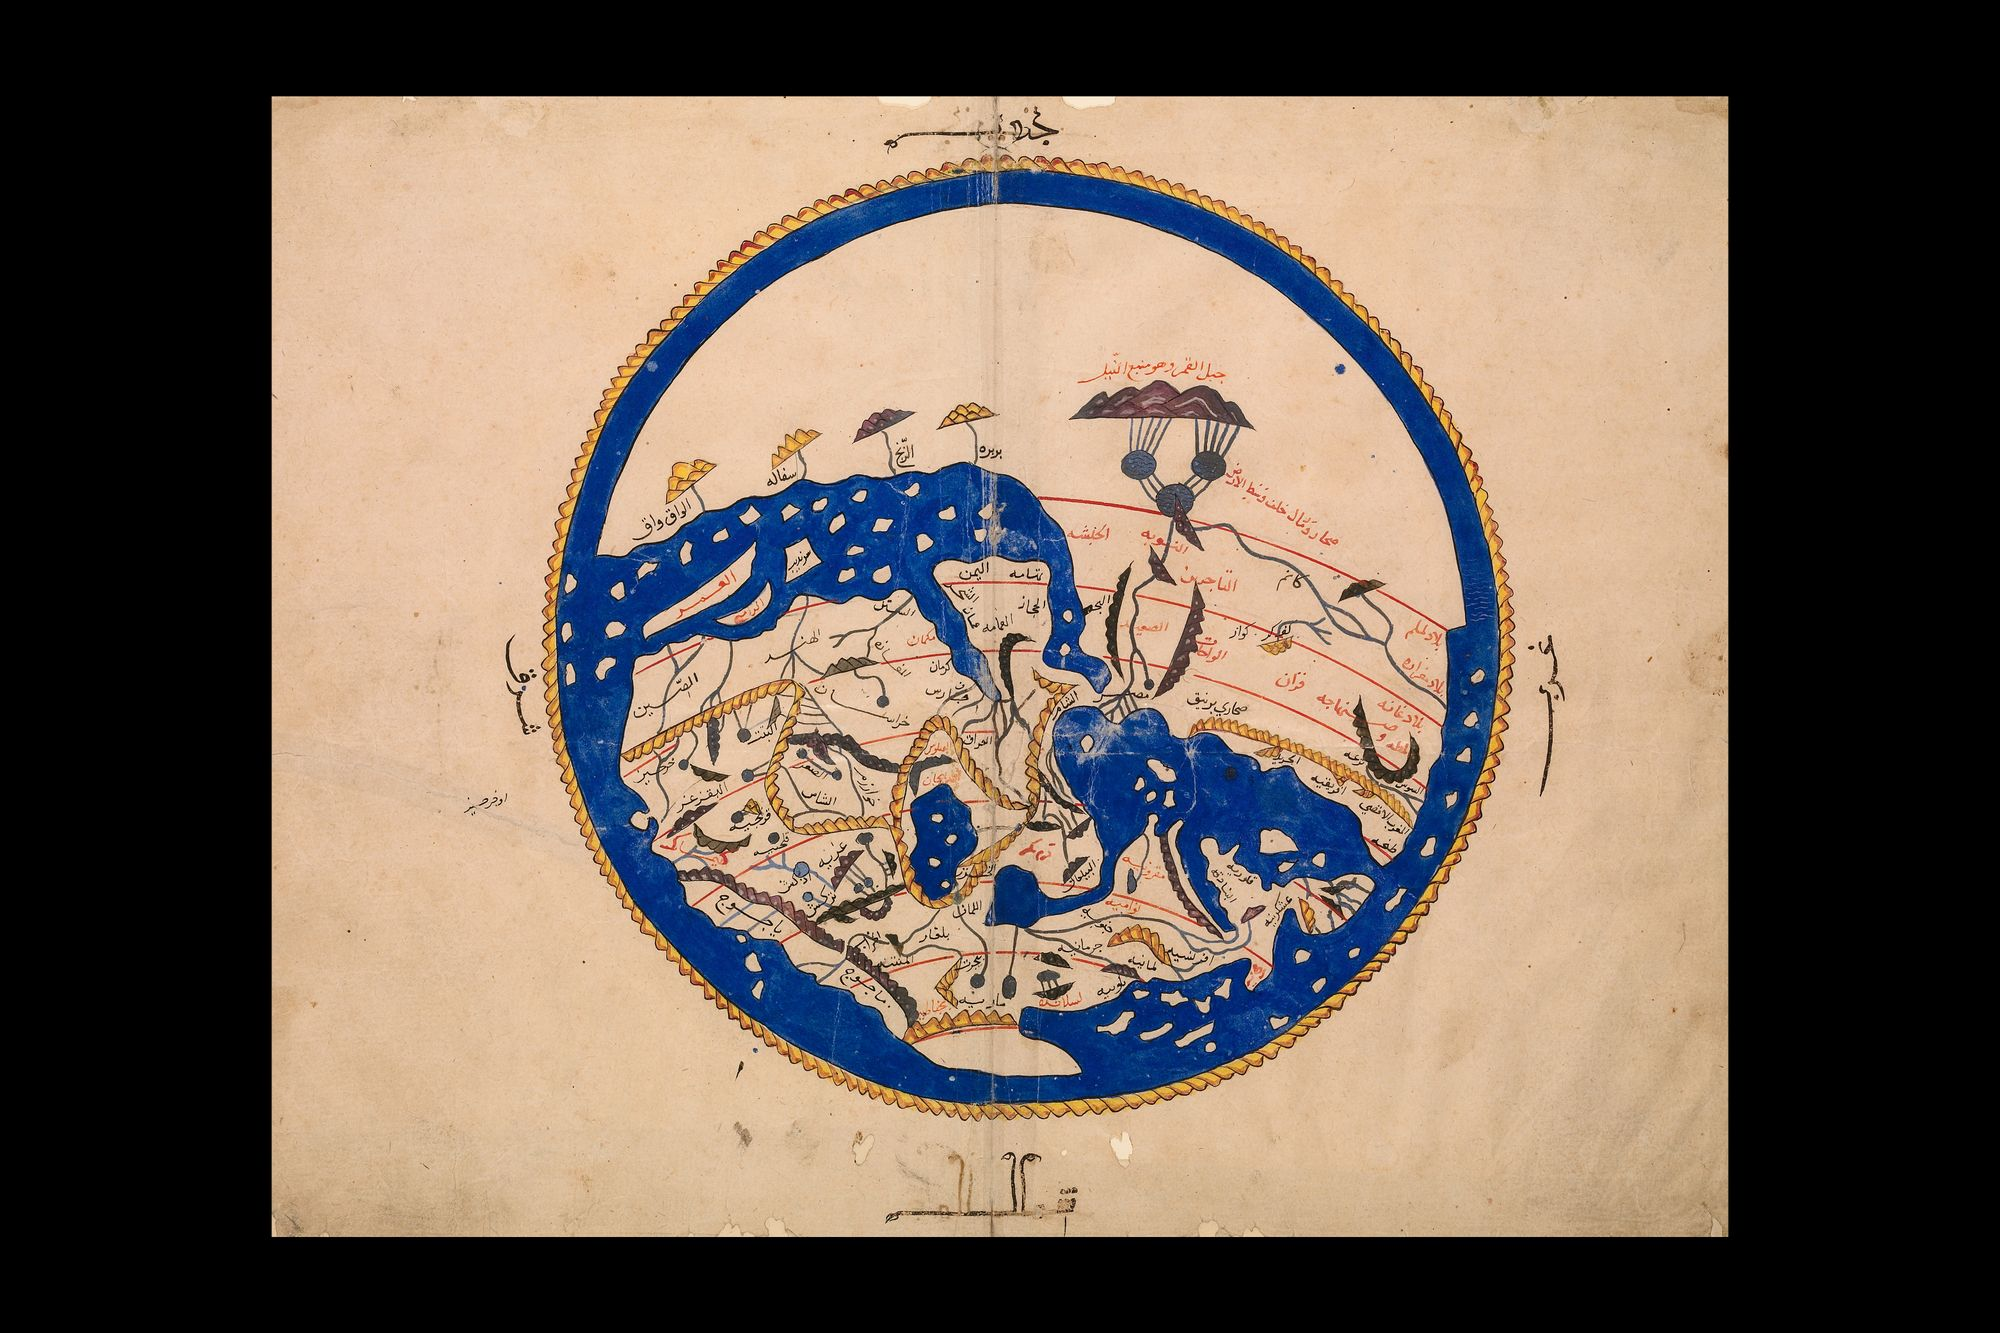 Round map showing the African continents with South up. The map is beautifully illustrated and includes drawings of mountains.